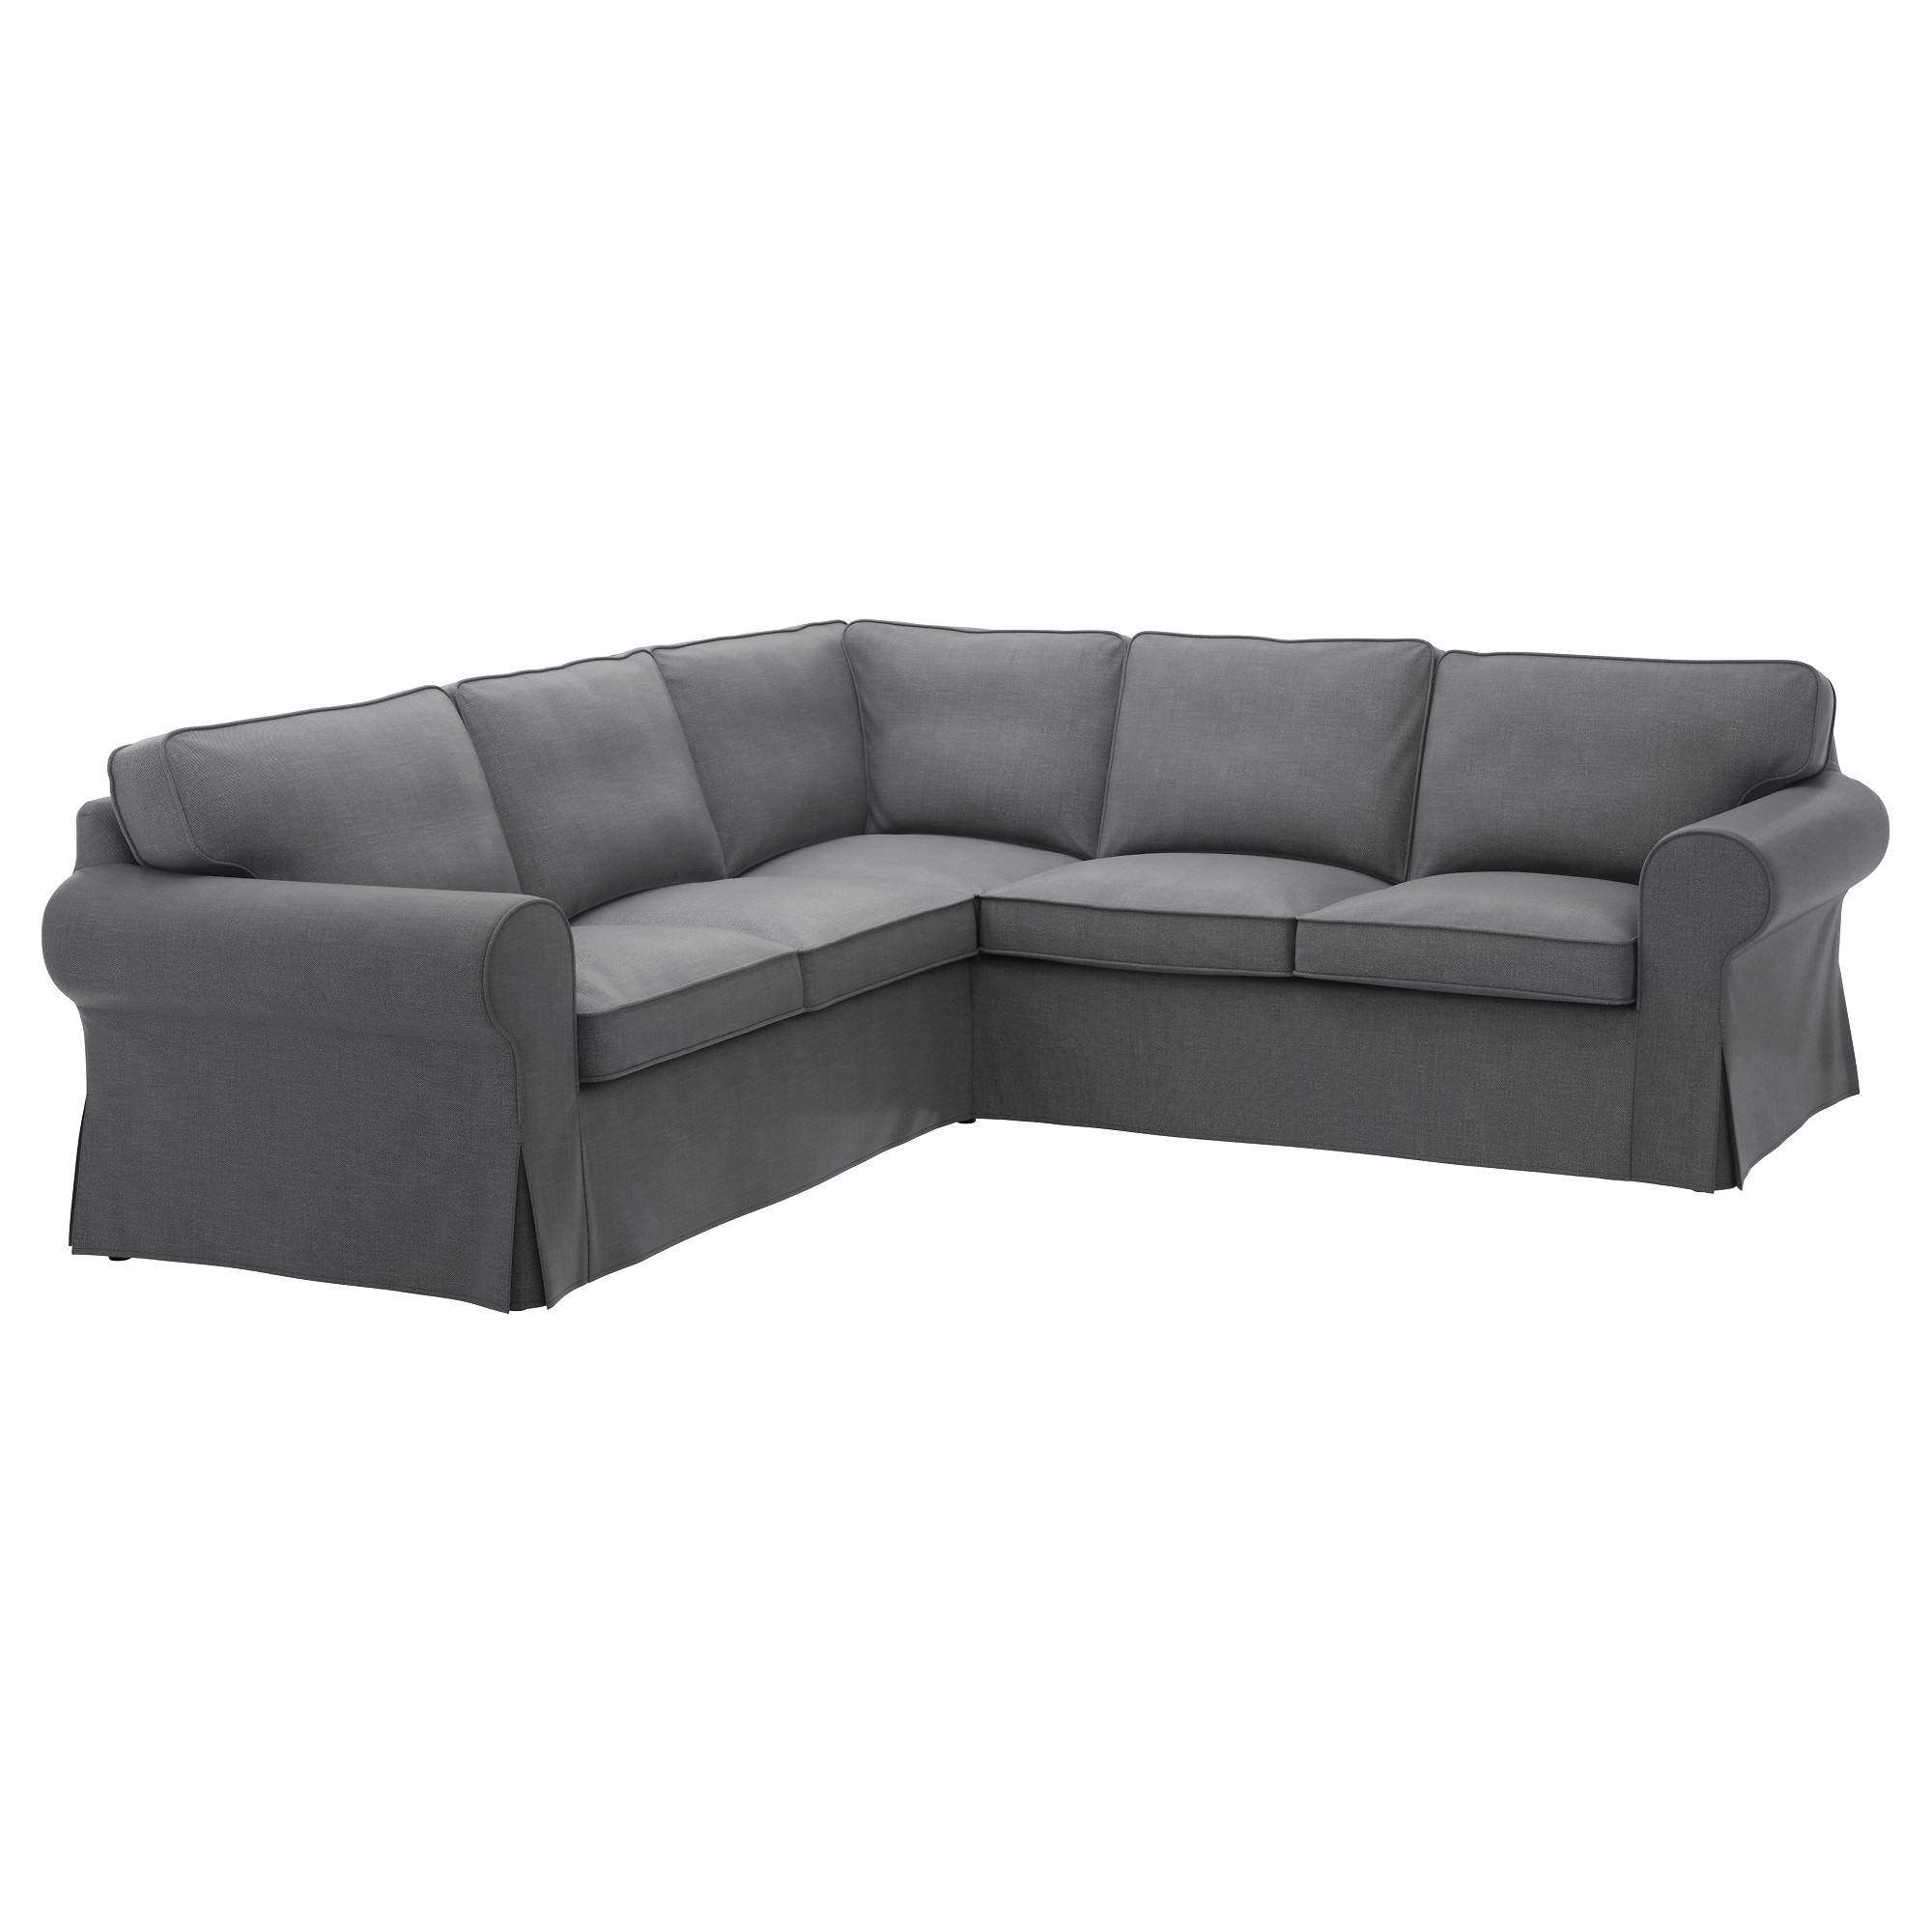 Ektorp Sectional, 4-Seat Corner - Lofallet Beige - Ikea with 4 Seat Sofas (Image 14 of 30)